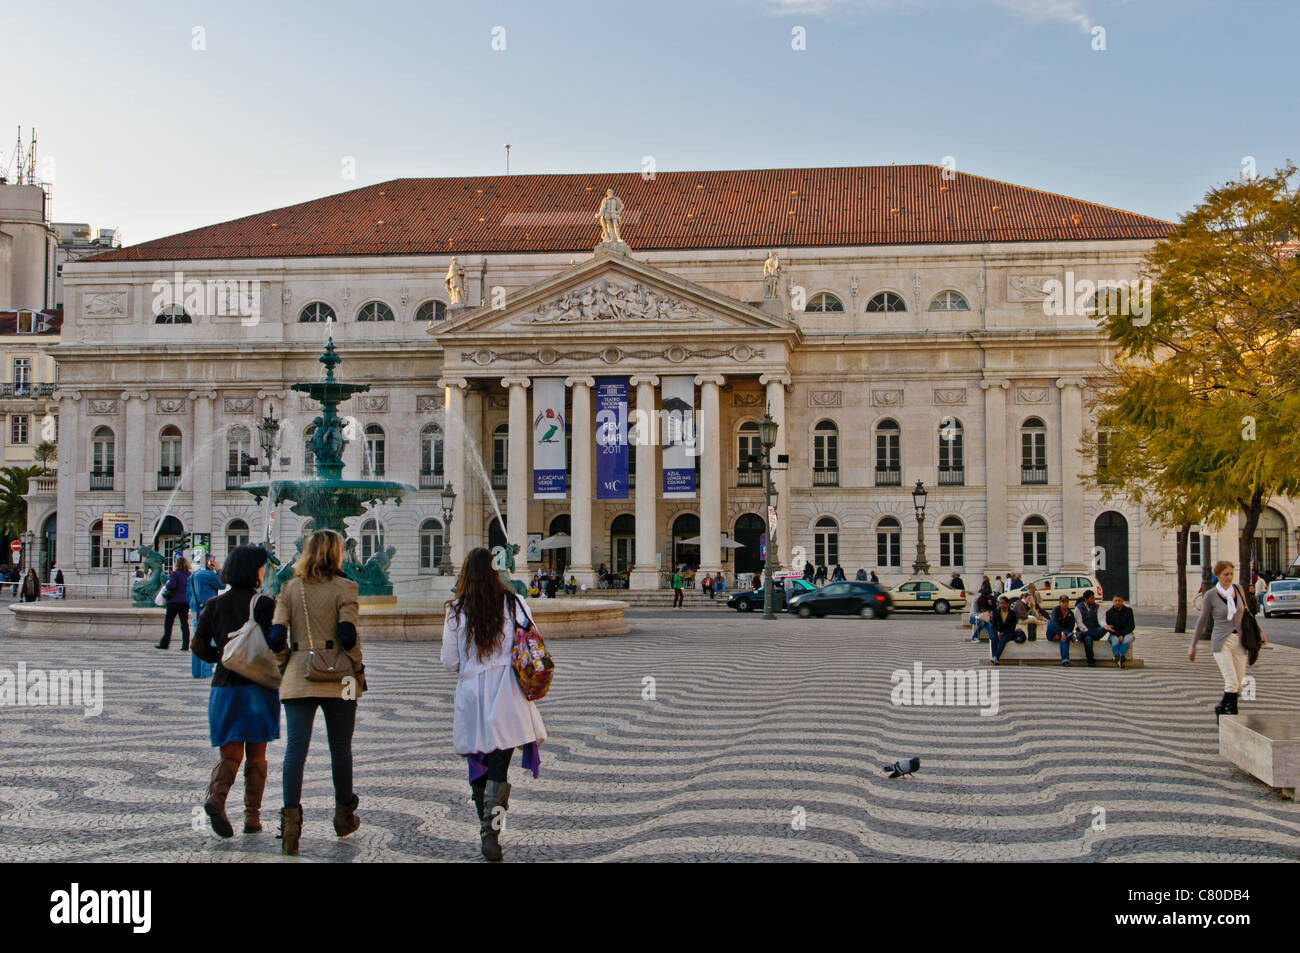 The National Theatre D. Maria II - Lisbon, Portugal Stock Photo